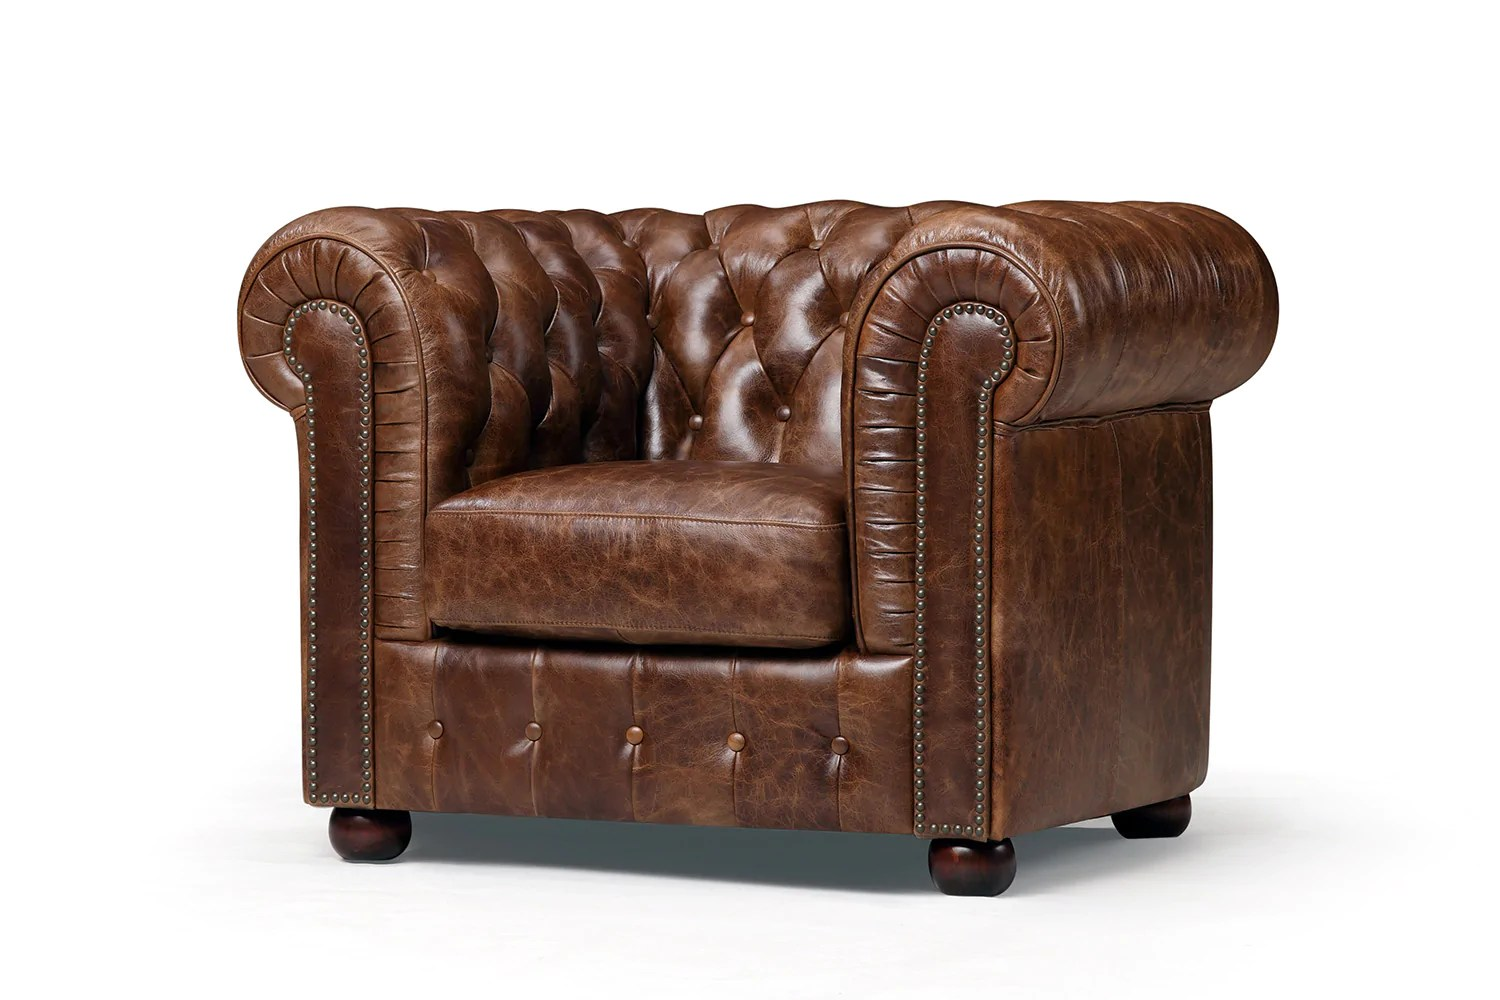 Chesterfield Ohrensessel Leder Original Chesterfield Sessel Rose Moore